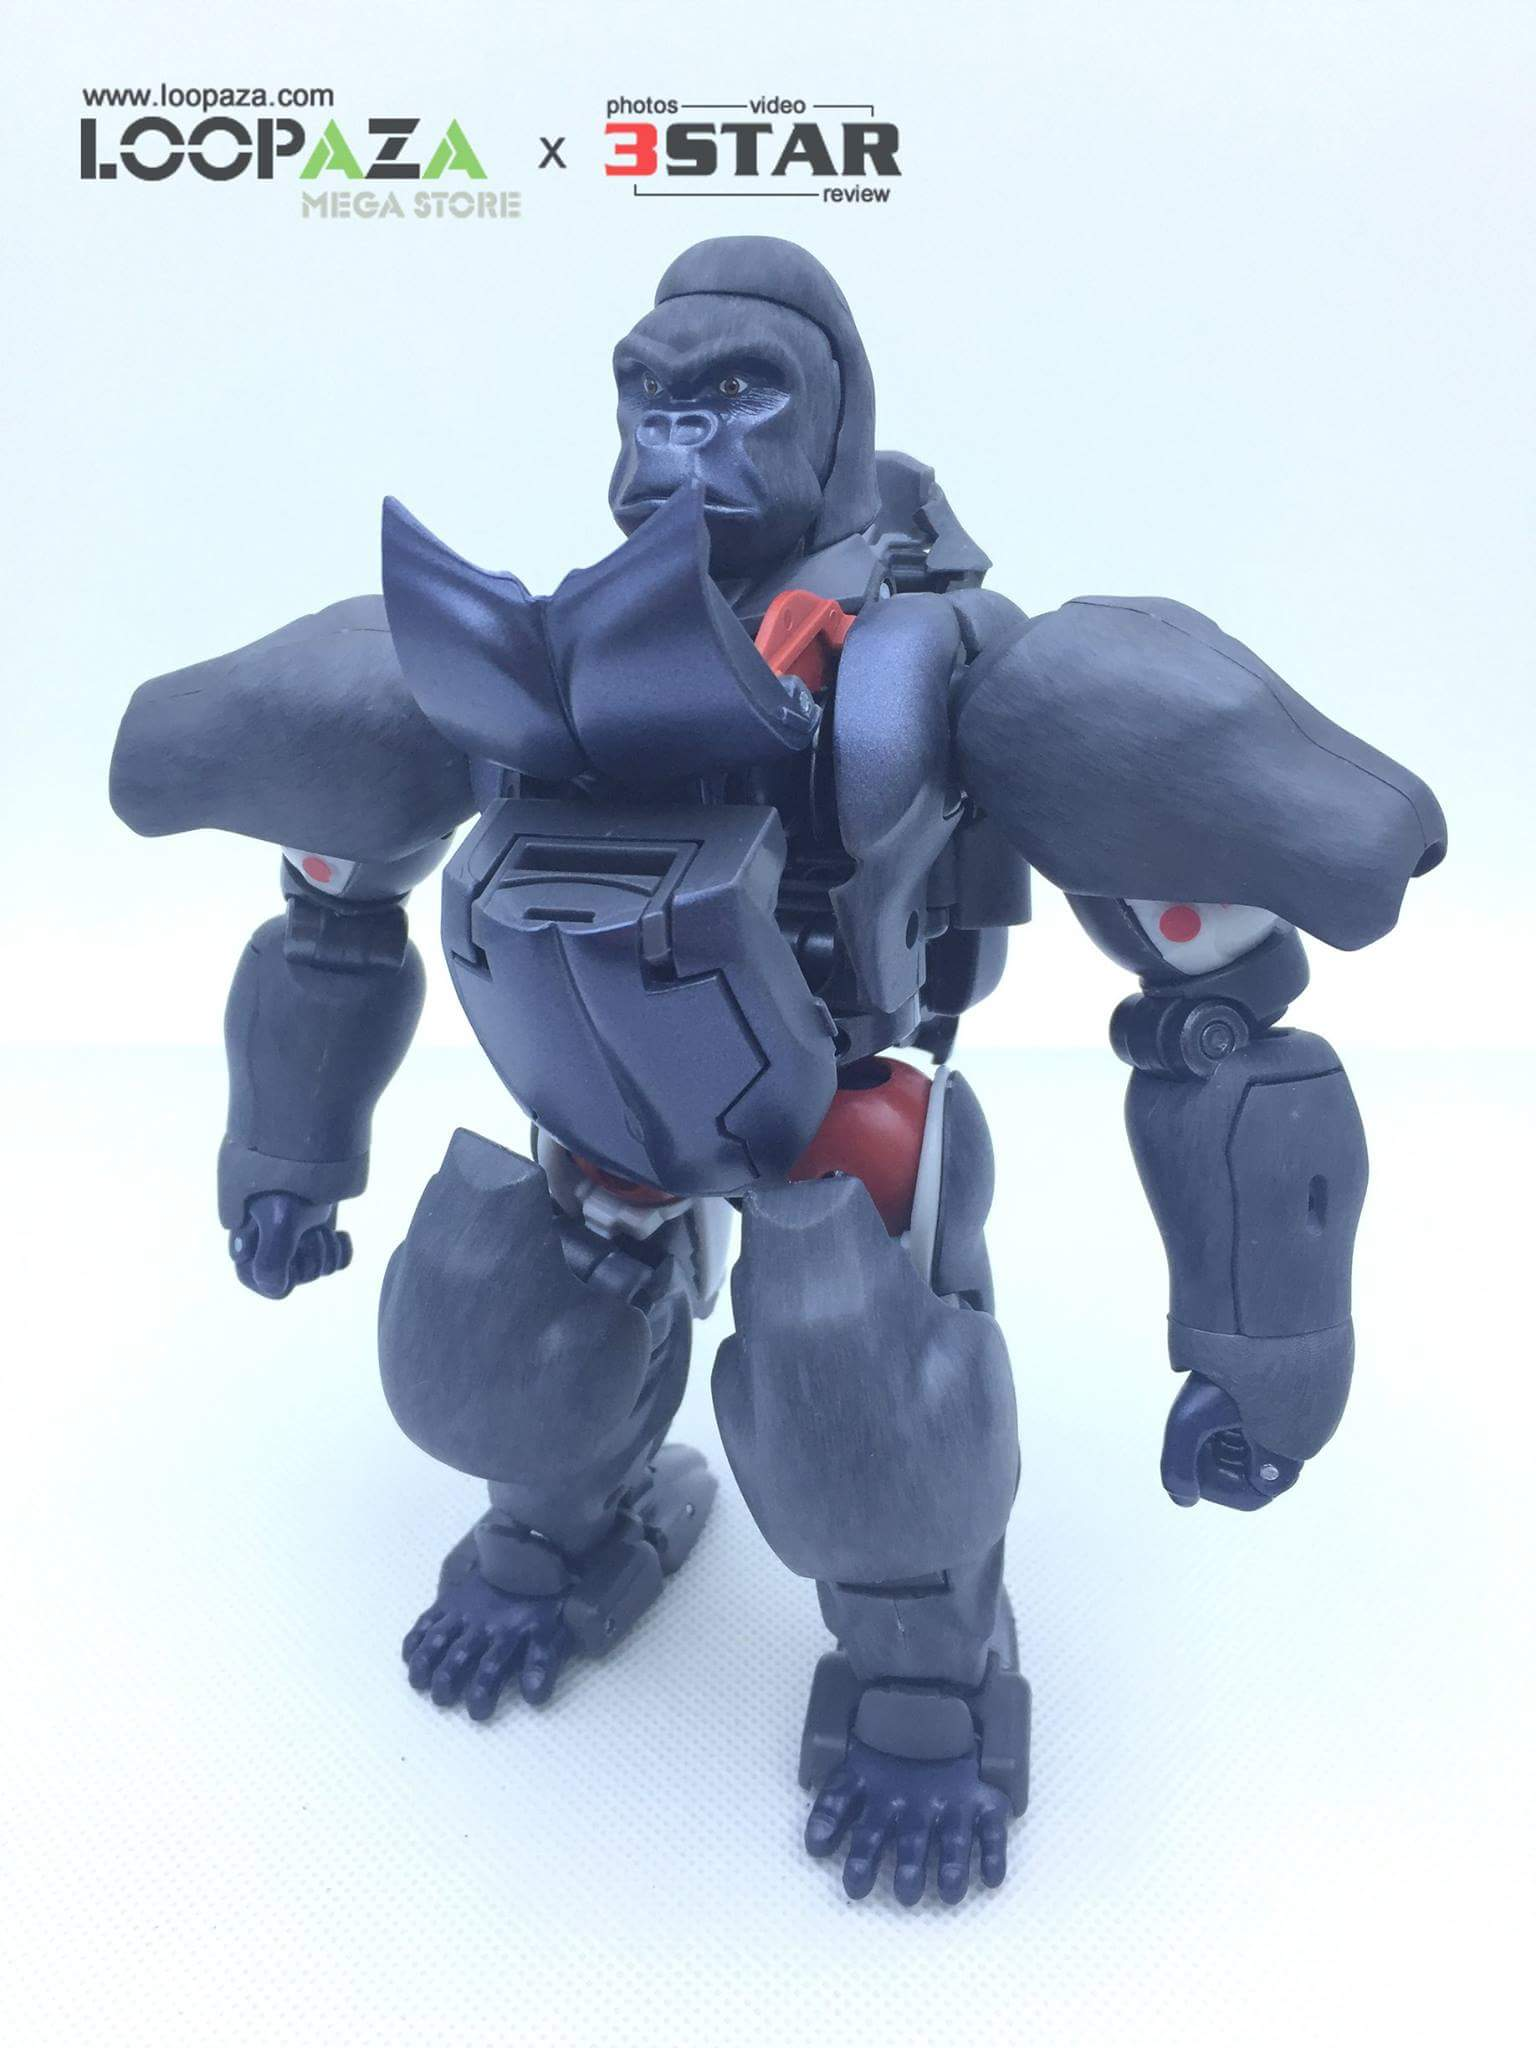 [Masterpiece] MP-32, MP-38 Optimus Primal et MP-38+ Burning Convoy (Beast Wars) - Page 3 H30fSdTg